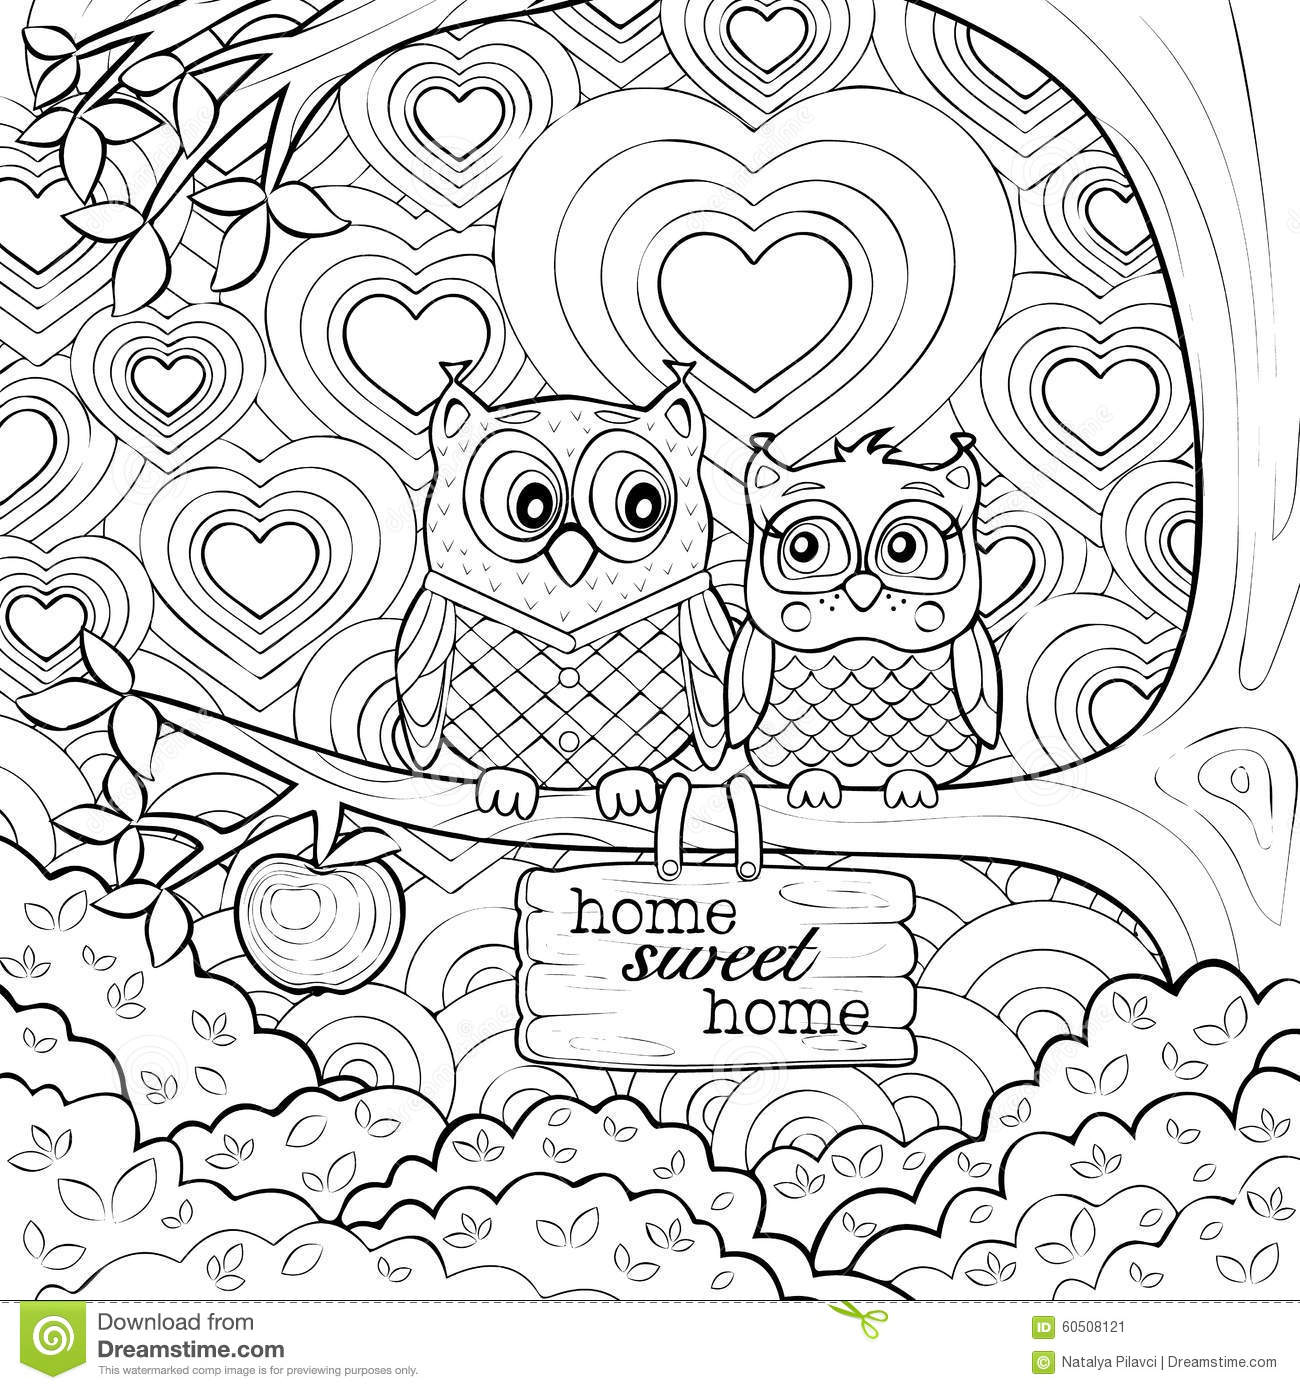 Printable Coloring Therapy Colring Pages